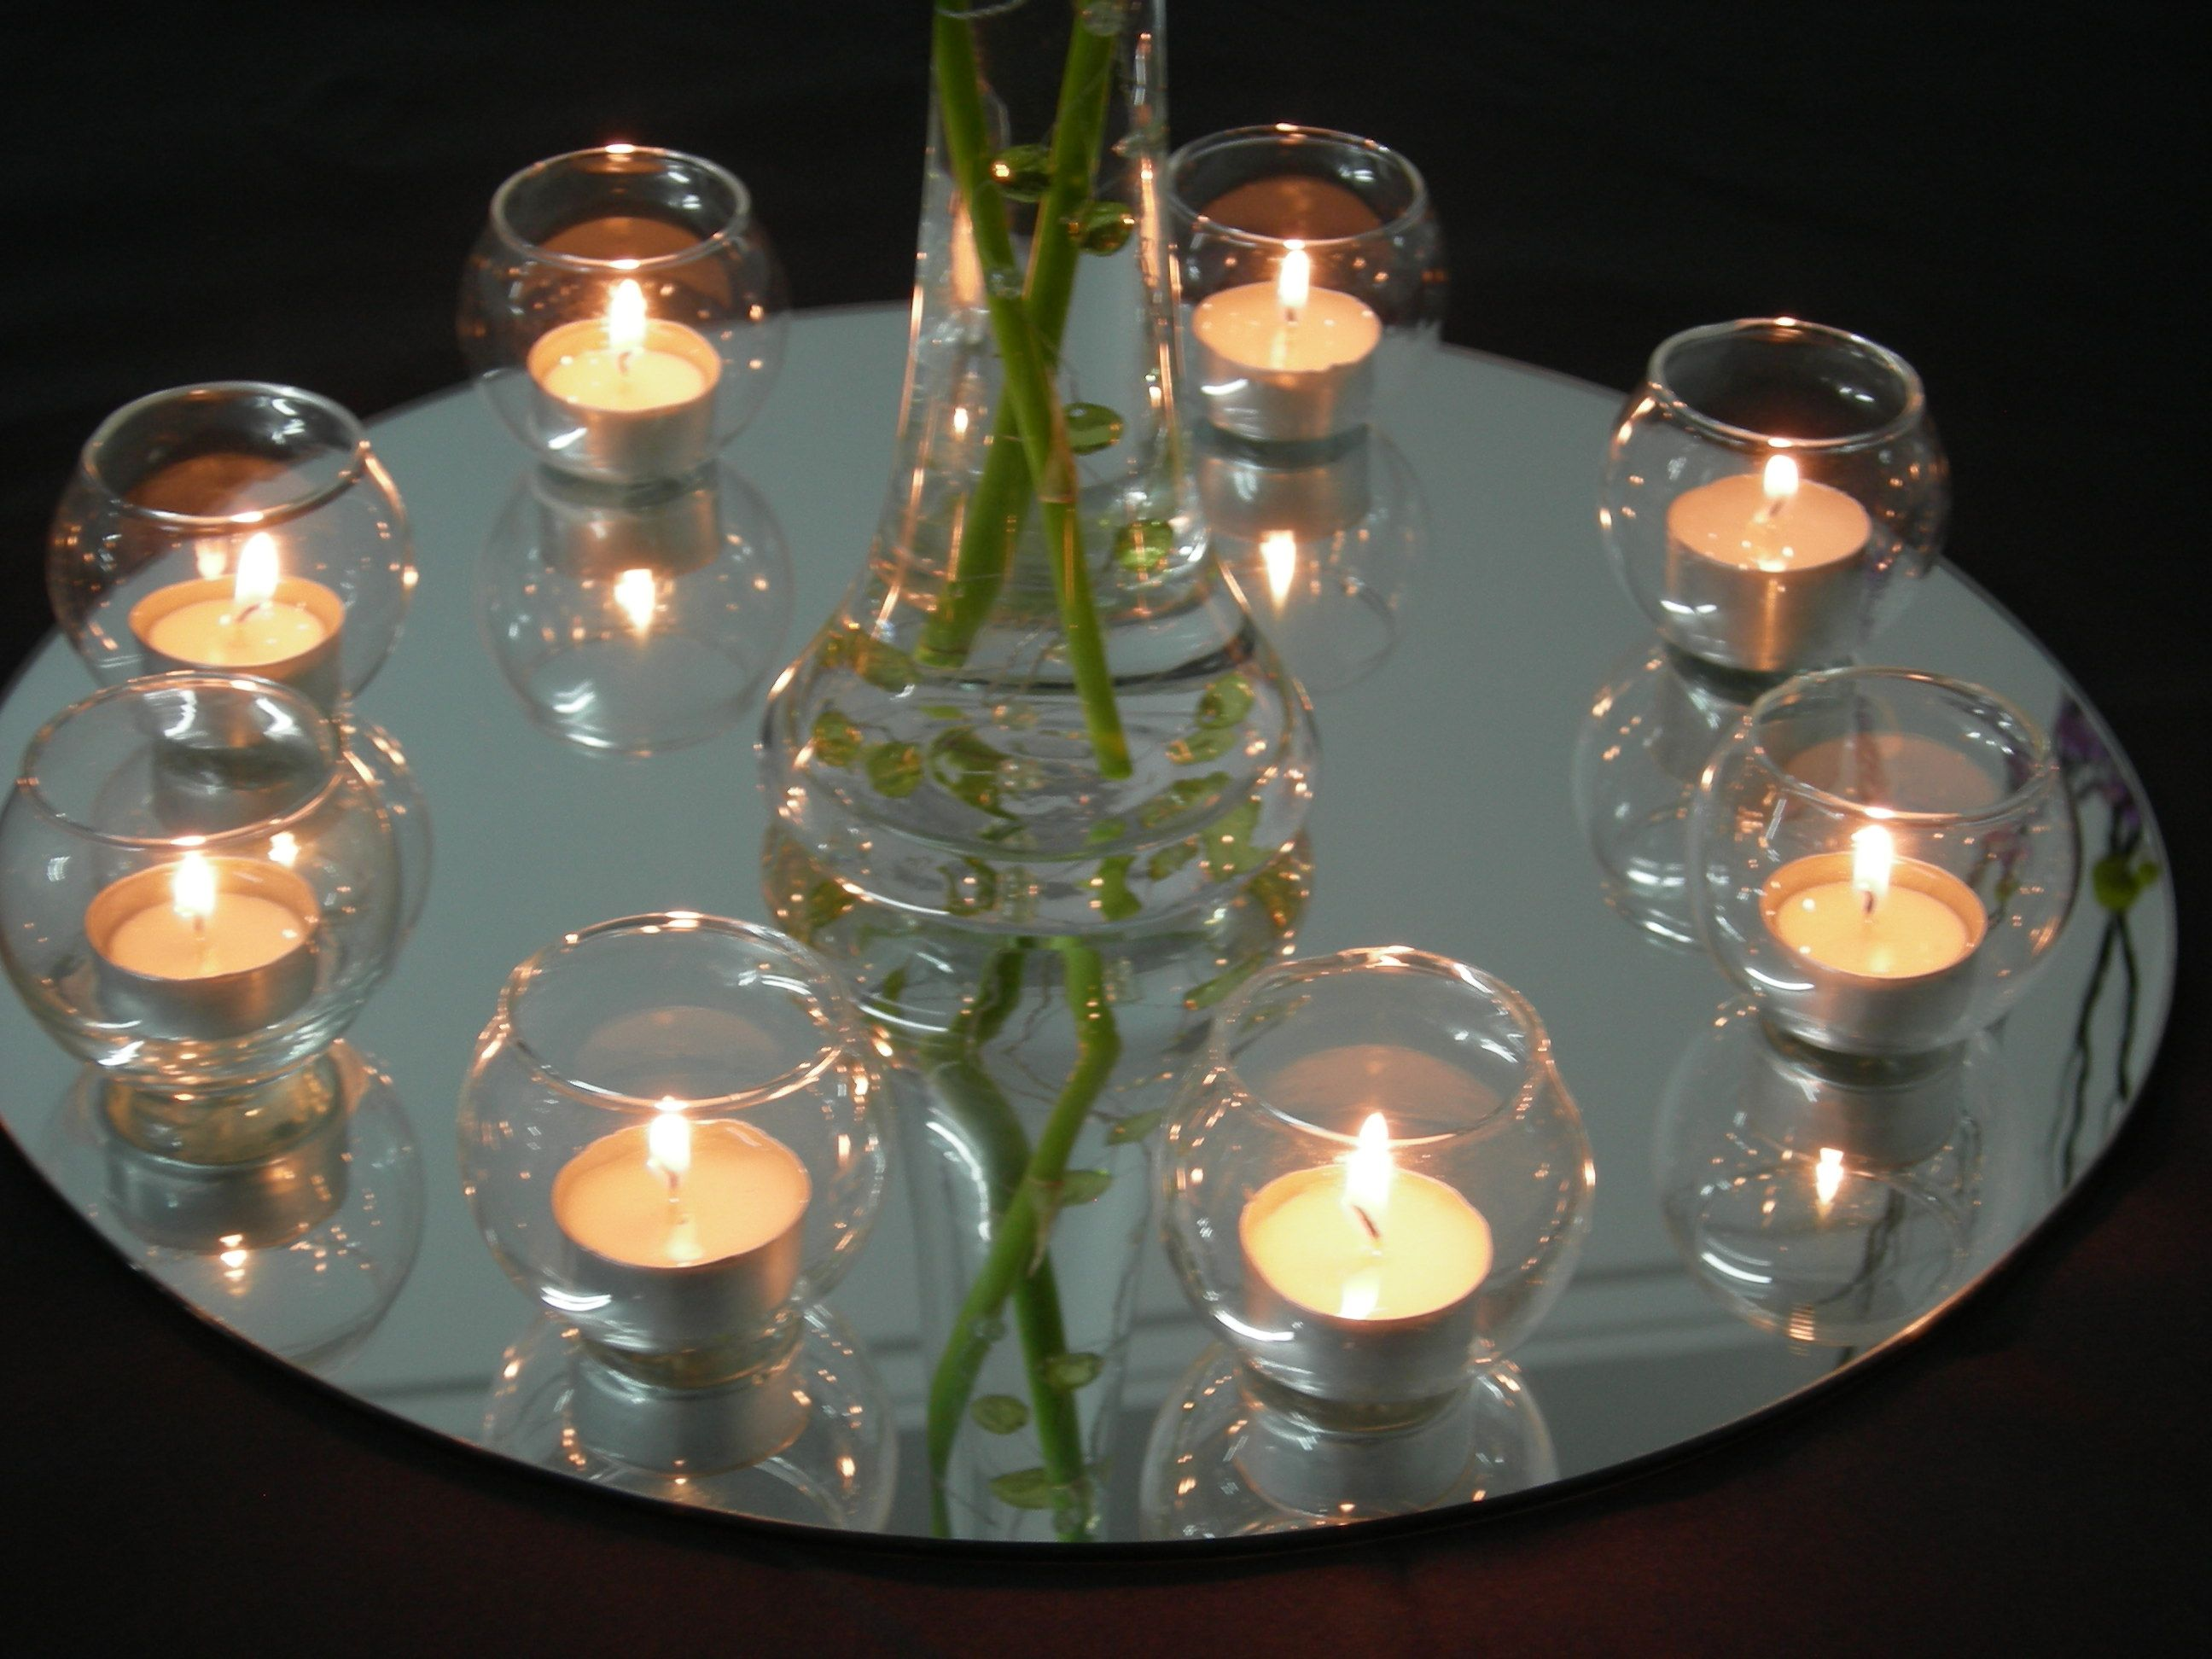 Mirror Plates and Candles for hire & Mirror Plates and Candles for hire | Centrepiece ideas | Pinterest ...